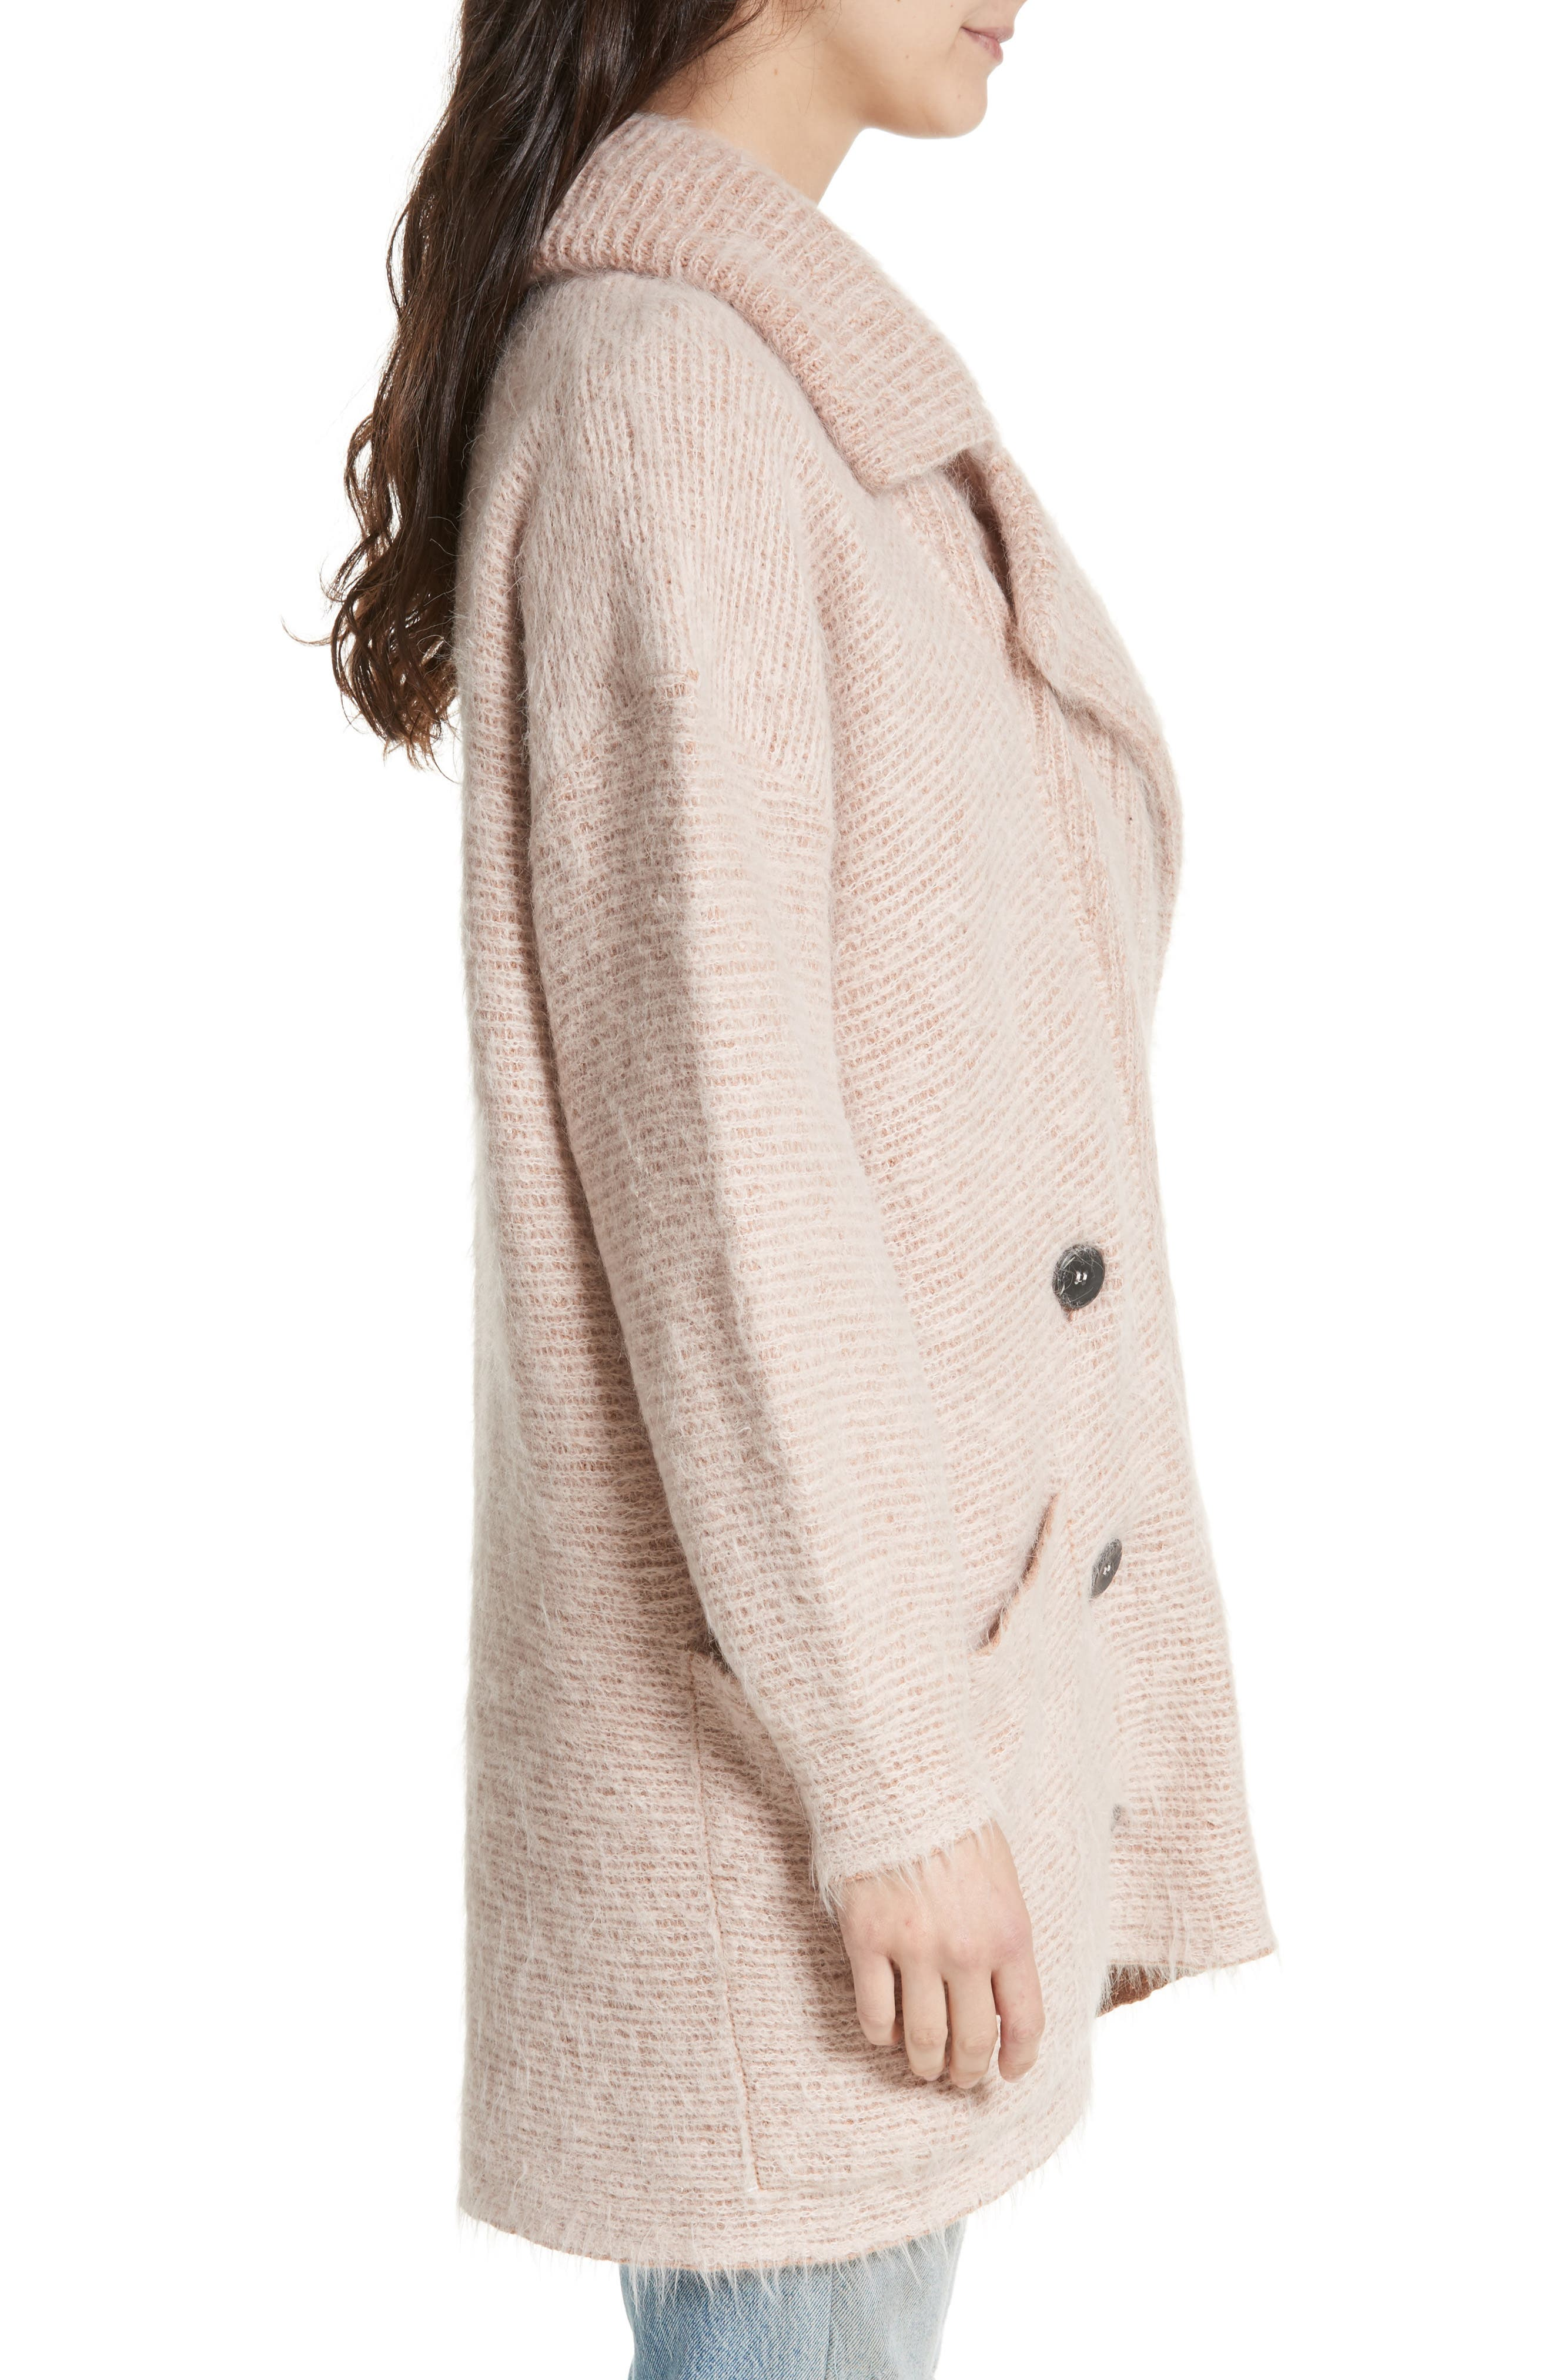 Take Two Sweater Coat,                             Alternate thumbnail 3, color,